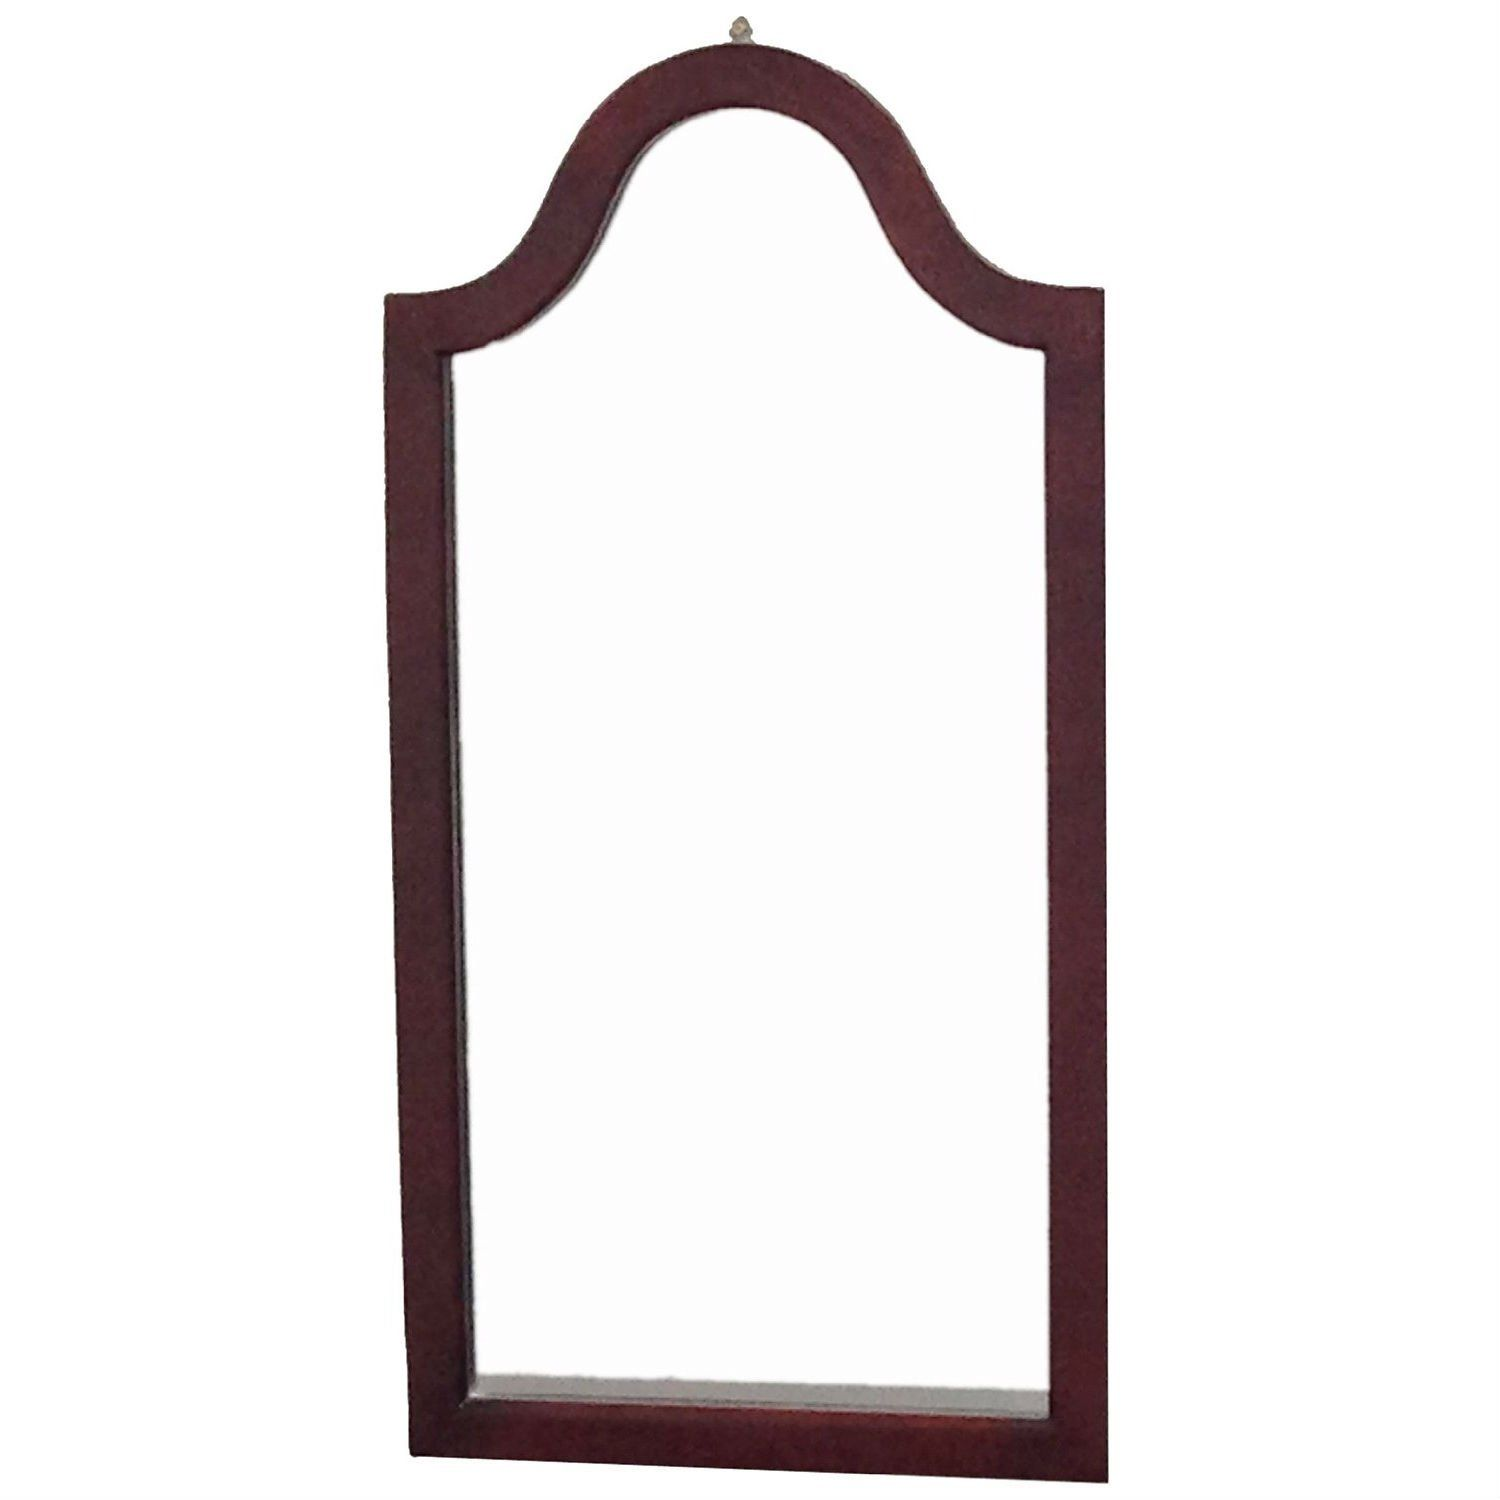 Cherry Lvp Accent Wall: Arc Top Vanity Accent Wall Mirror In Cherry Wood Finish